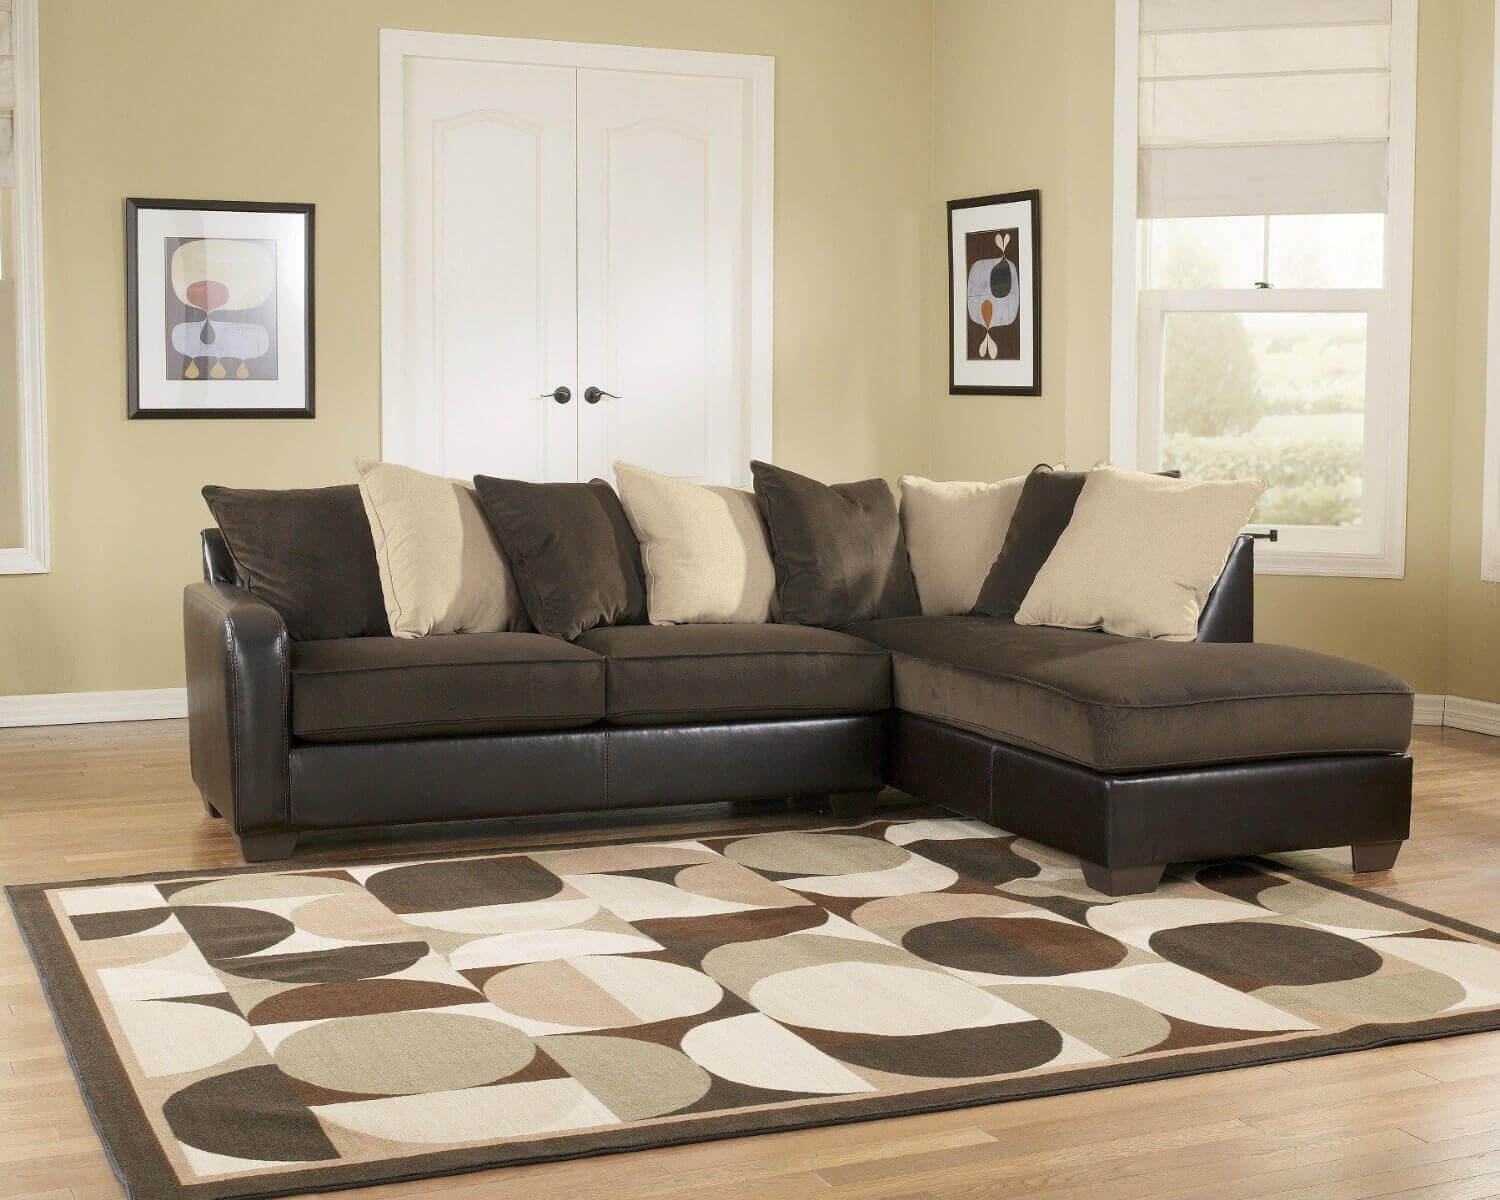 This Piece From Ashley Furniture Is A Contemporary Design That Utilizes Two  Popular Design Colors: